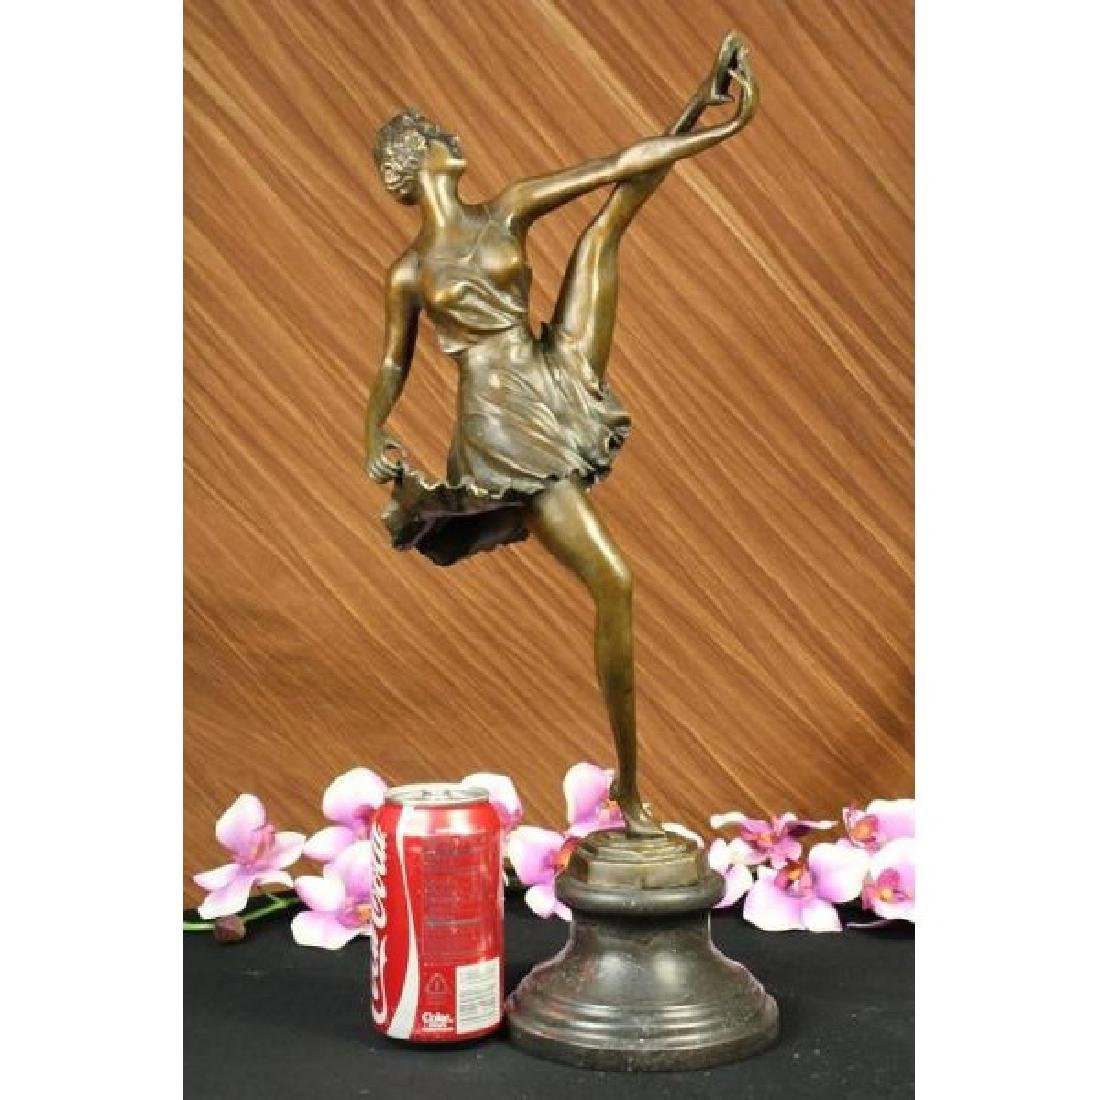 THE RUSSIAN DANCER ART DECO MARBLE BASE HOT CAST BRONZE